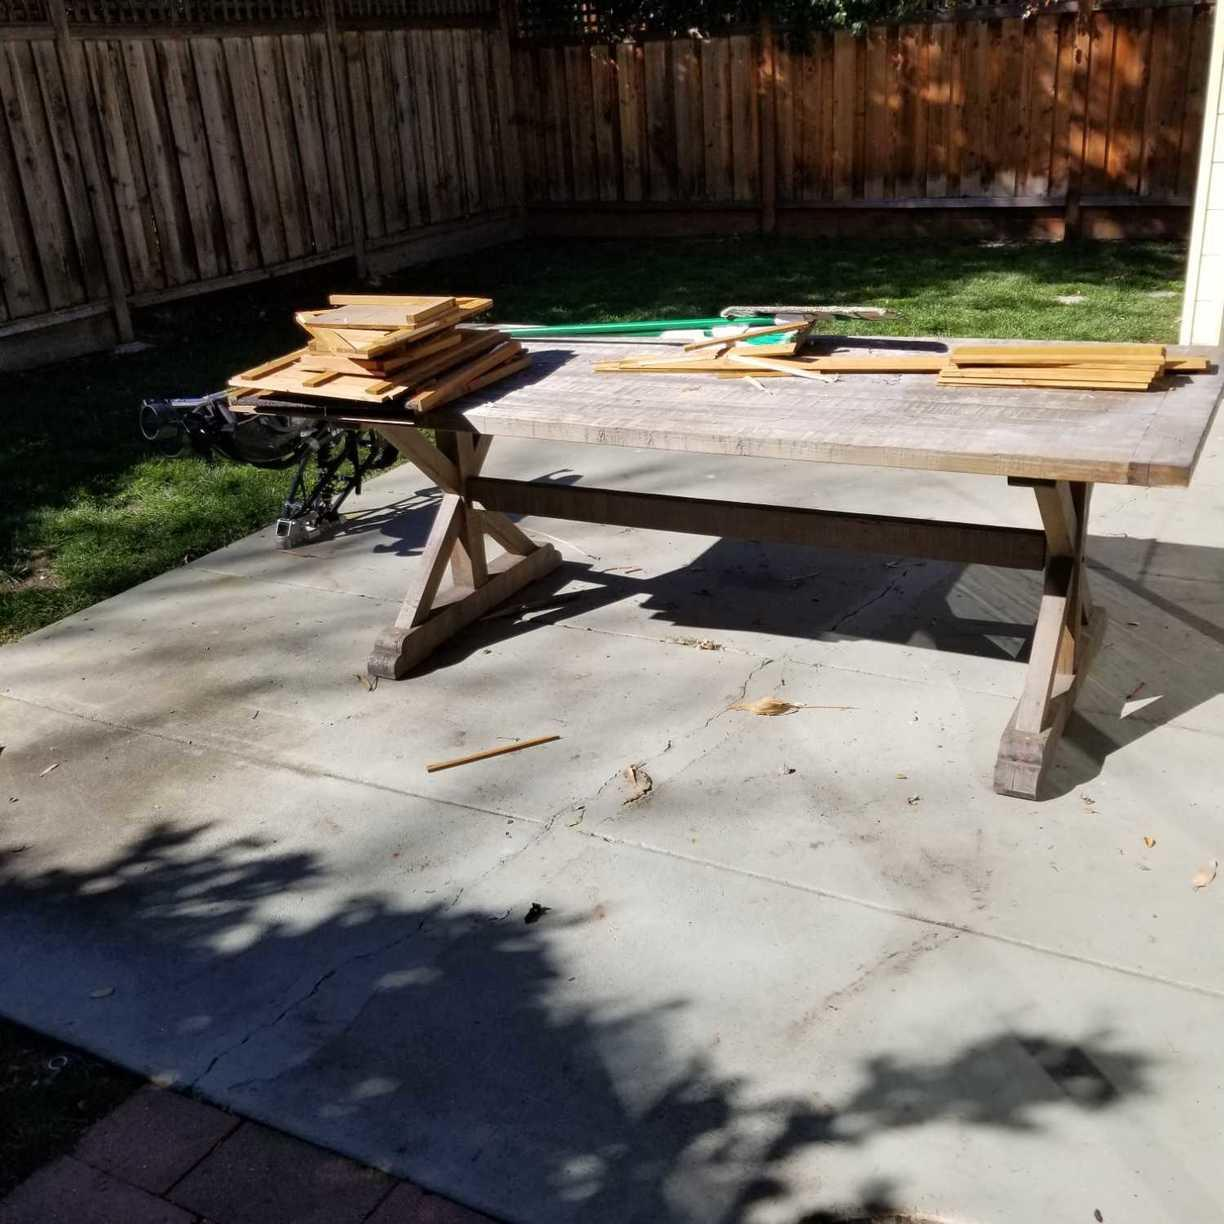 Bulky table removal through a narrow path in Palo Alto, CA - Before Photo